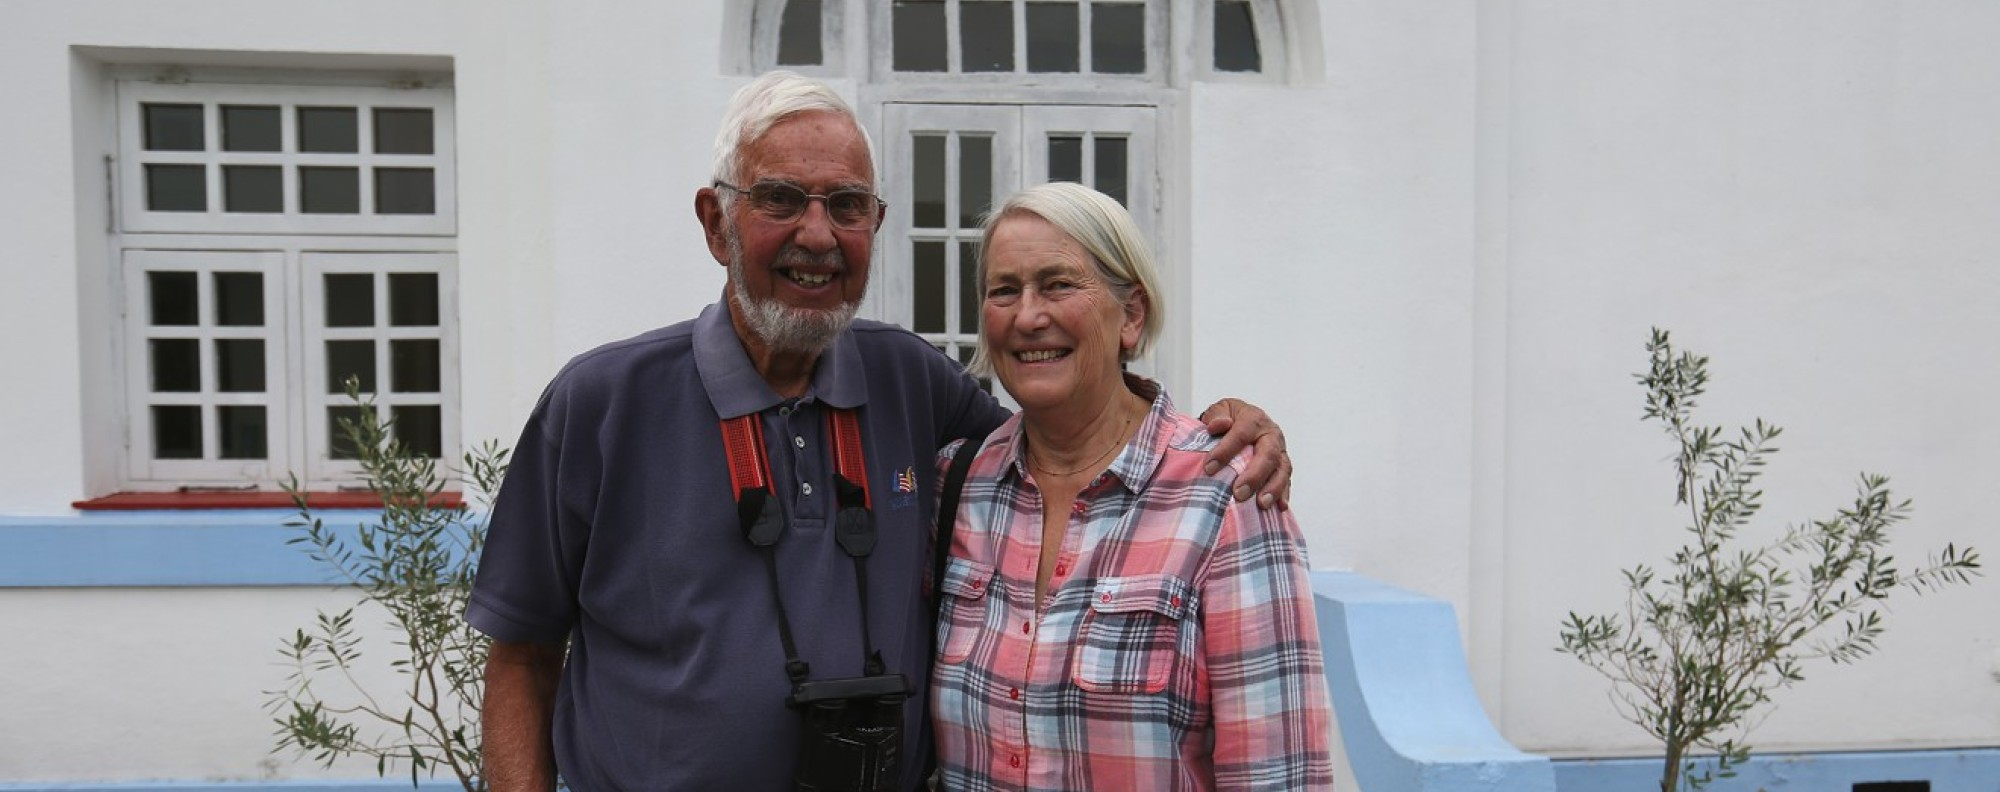 Dr Jim Flegg and his wife, Caroline, at the Tai Tam cottage. Photo: Xiaomei Chen.